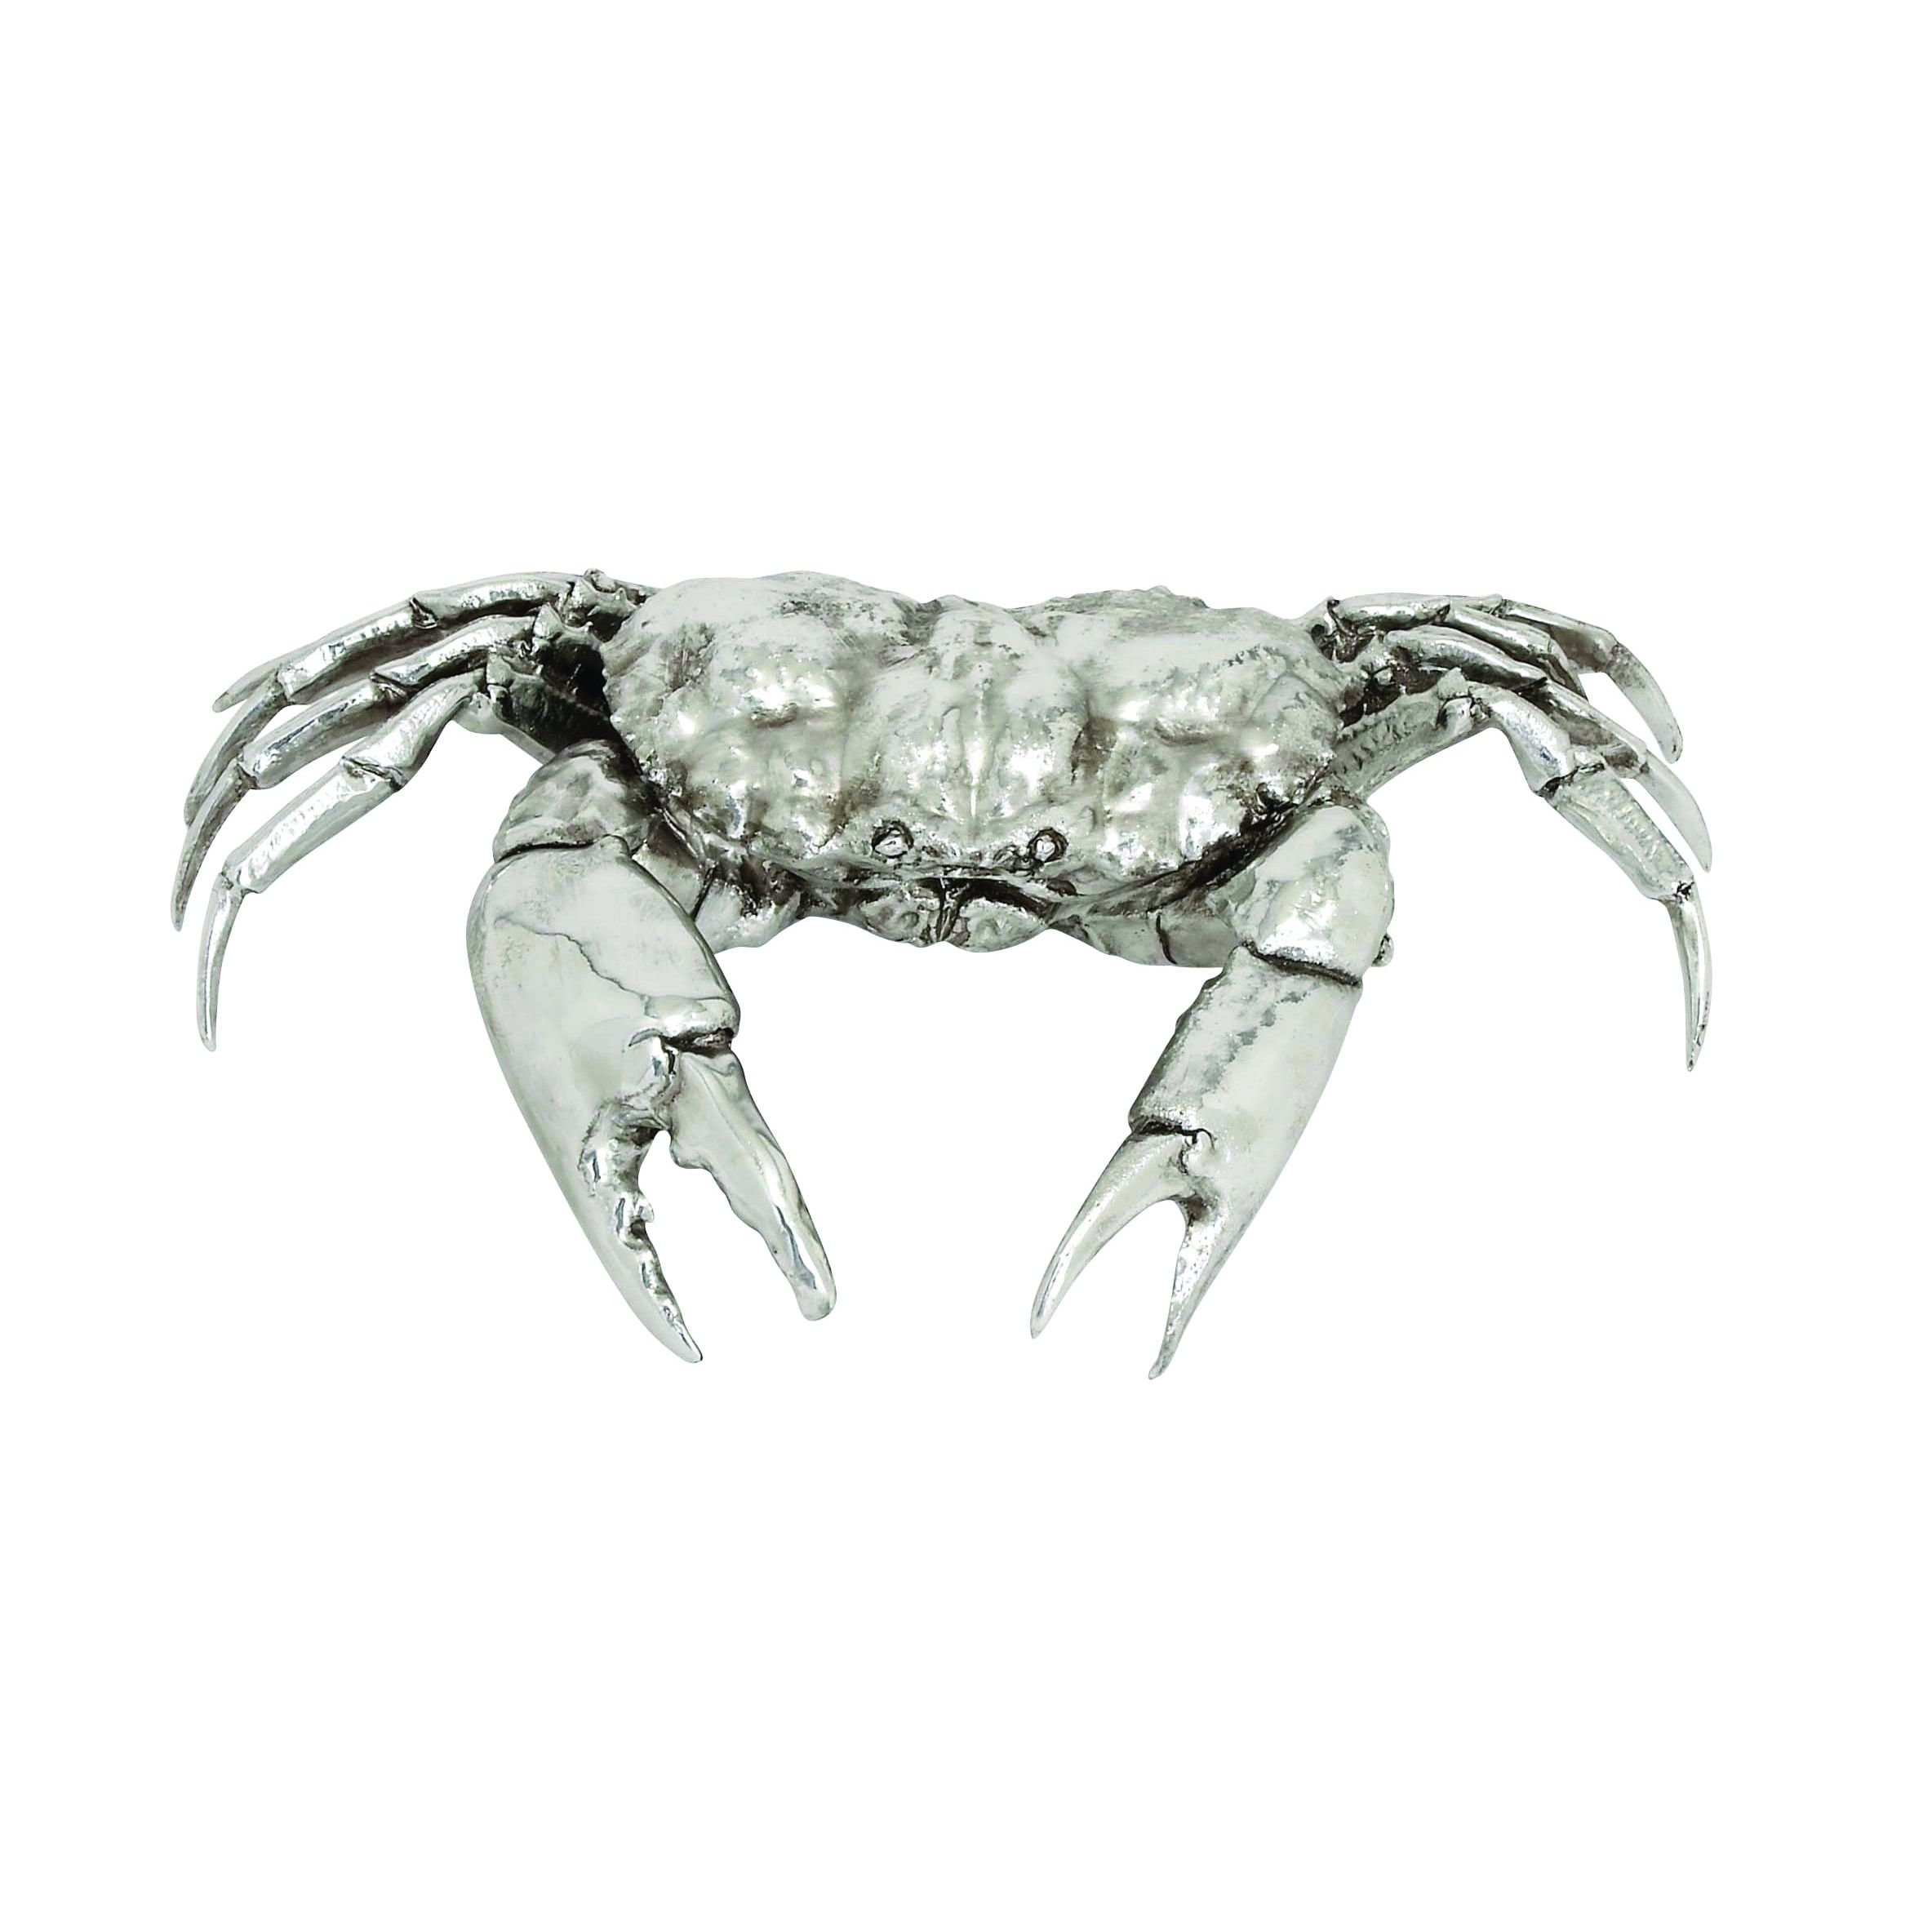 Silver Dyed Crab Home Decor